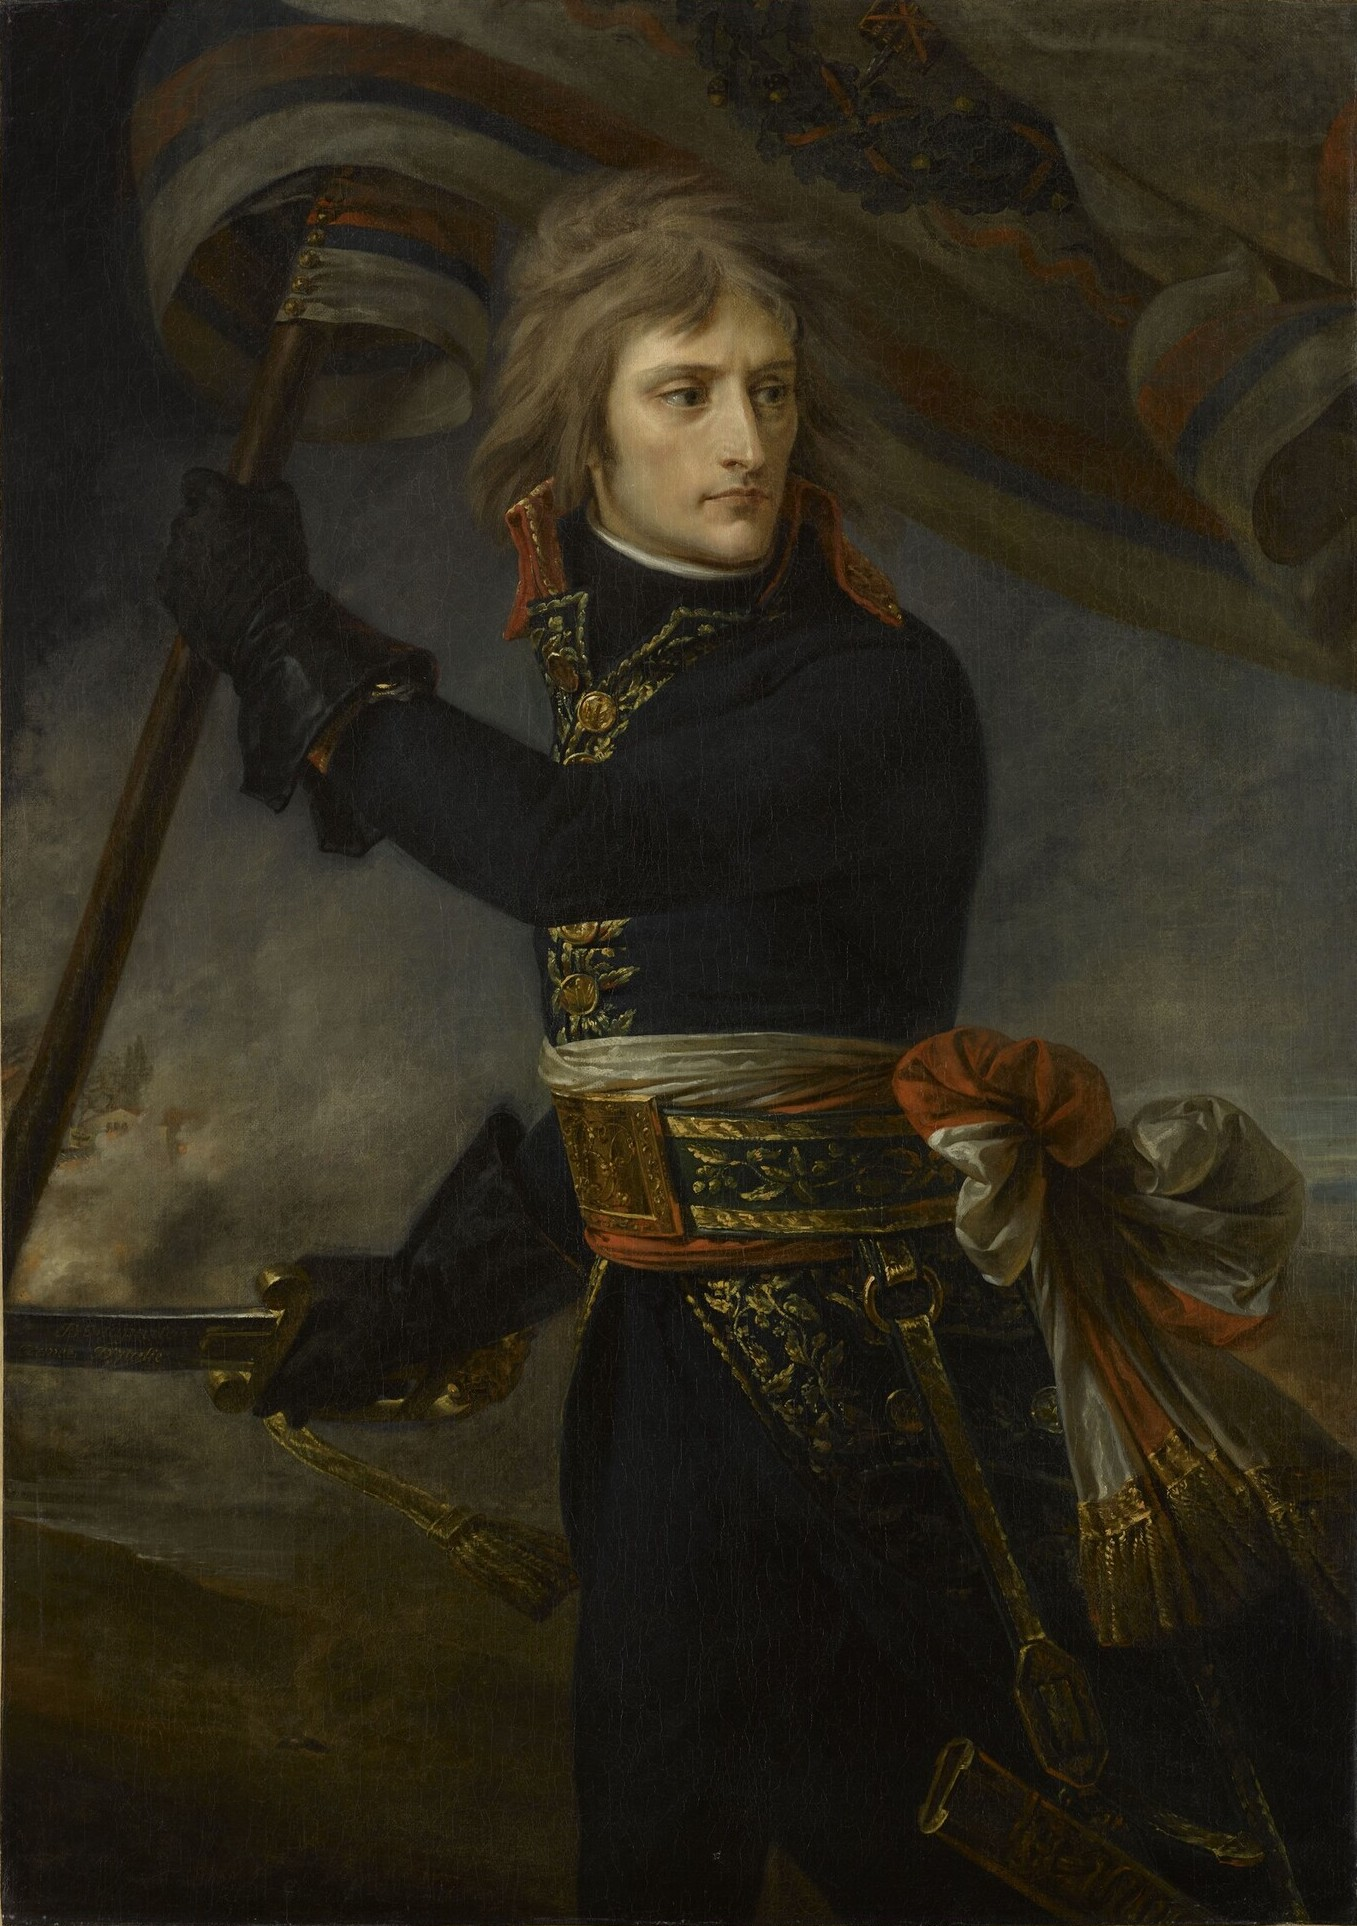 1801_Antoine-Jean_Gros_-_Bonaparte_on_the_Bridge_at_Arcole.jpg